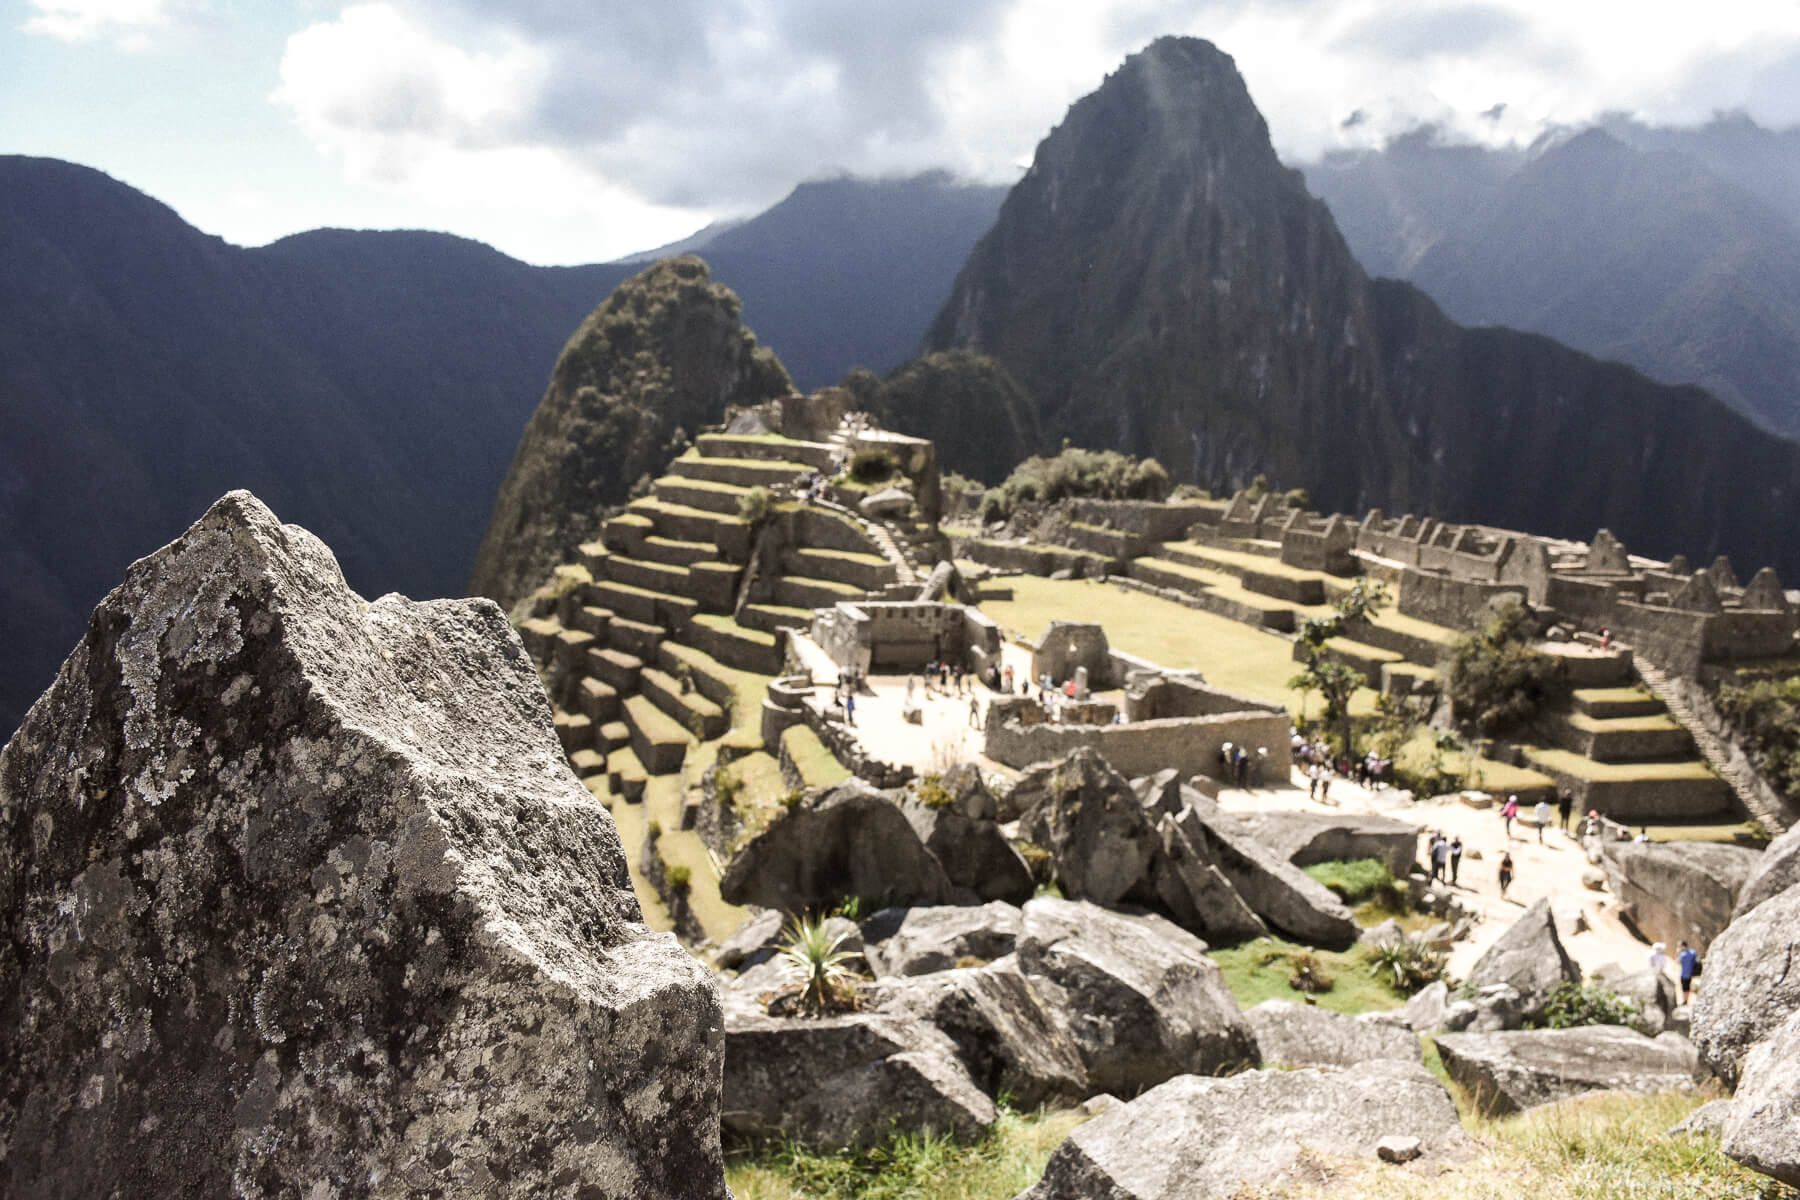 Camera focused on a huge stone with Machu Picchu blurred in the background